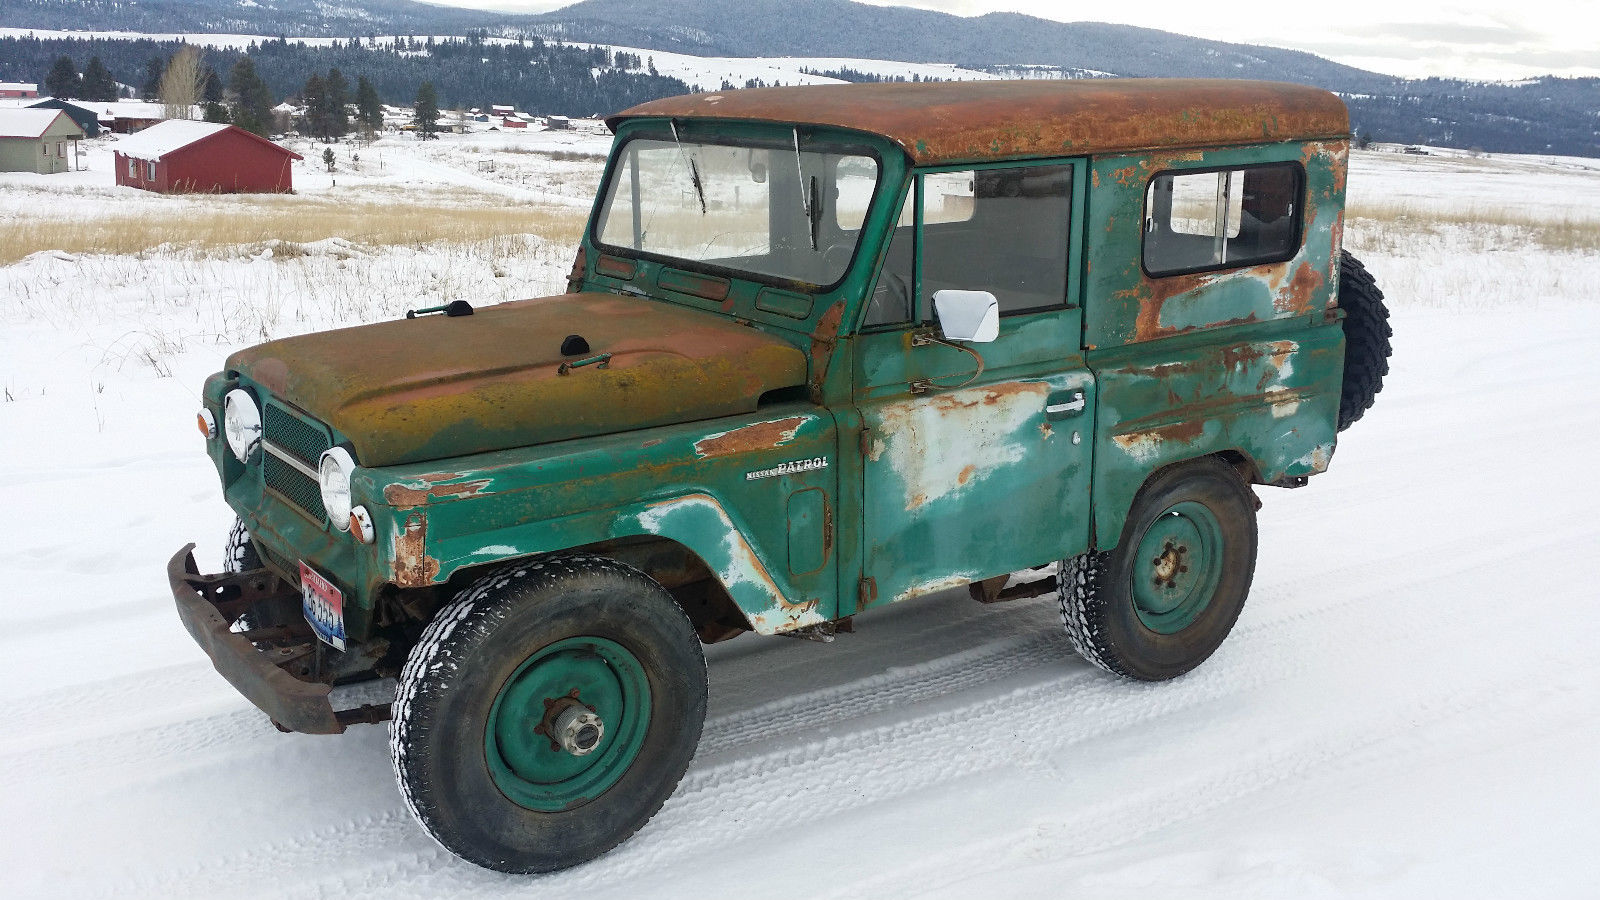 Nissan Patrol For Sale Usa >> 1964 NISSAN PATROL SOFT TOP 4X4 L60: RUNS NICE AND DRIVES, SOLID, CONVERTIBLE